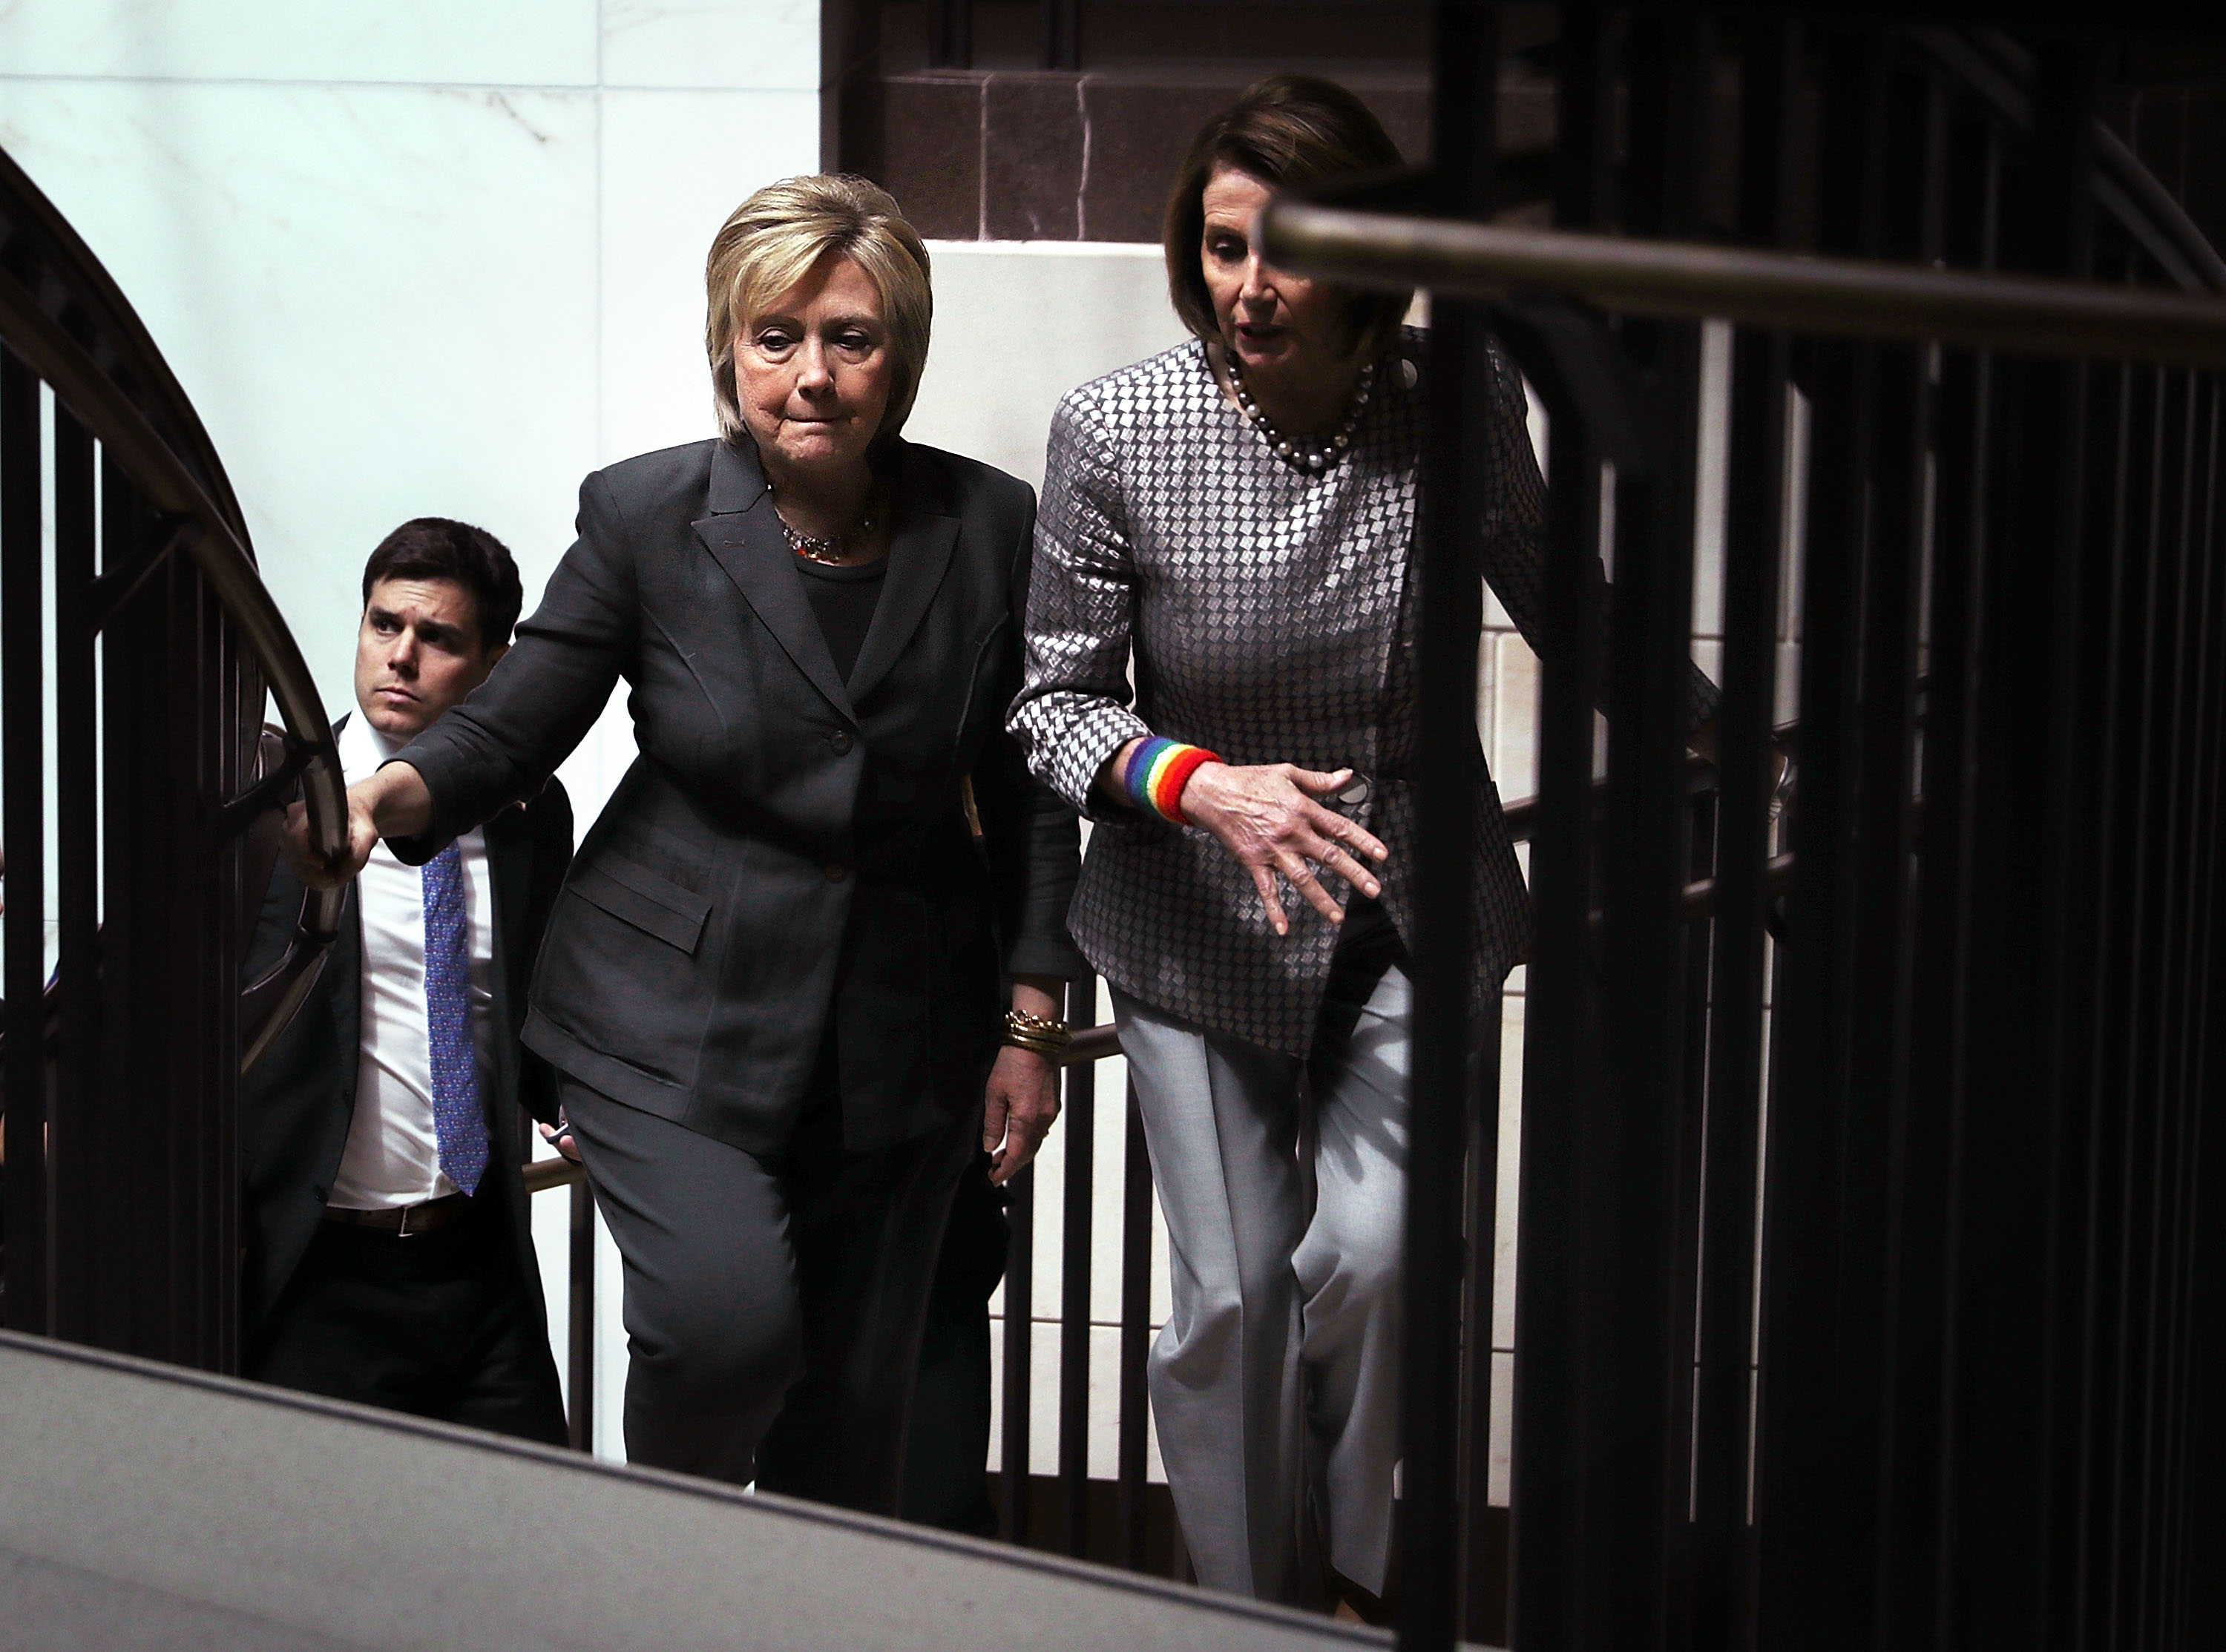 Accompanied by House Minority Leader Rep. Nancy Pelosi (D-CA) (R), Democratic presidential candidate Hillary Clinton leaves after she met with House Democrats June 22, 2016 on Capitol Hill in Washington, DC. Clinton joined the House Democratic Caucus meeting as she continued to campaign for the election.